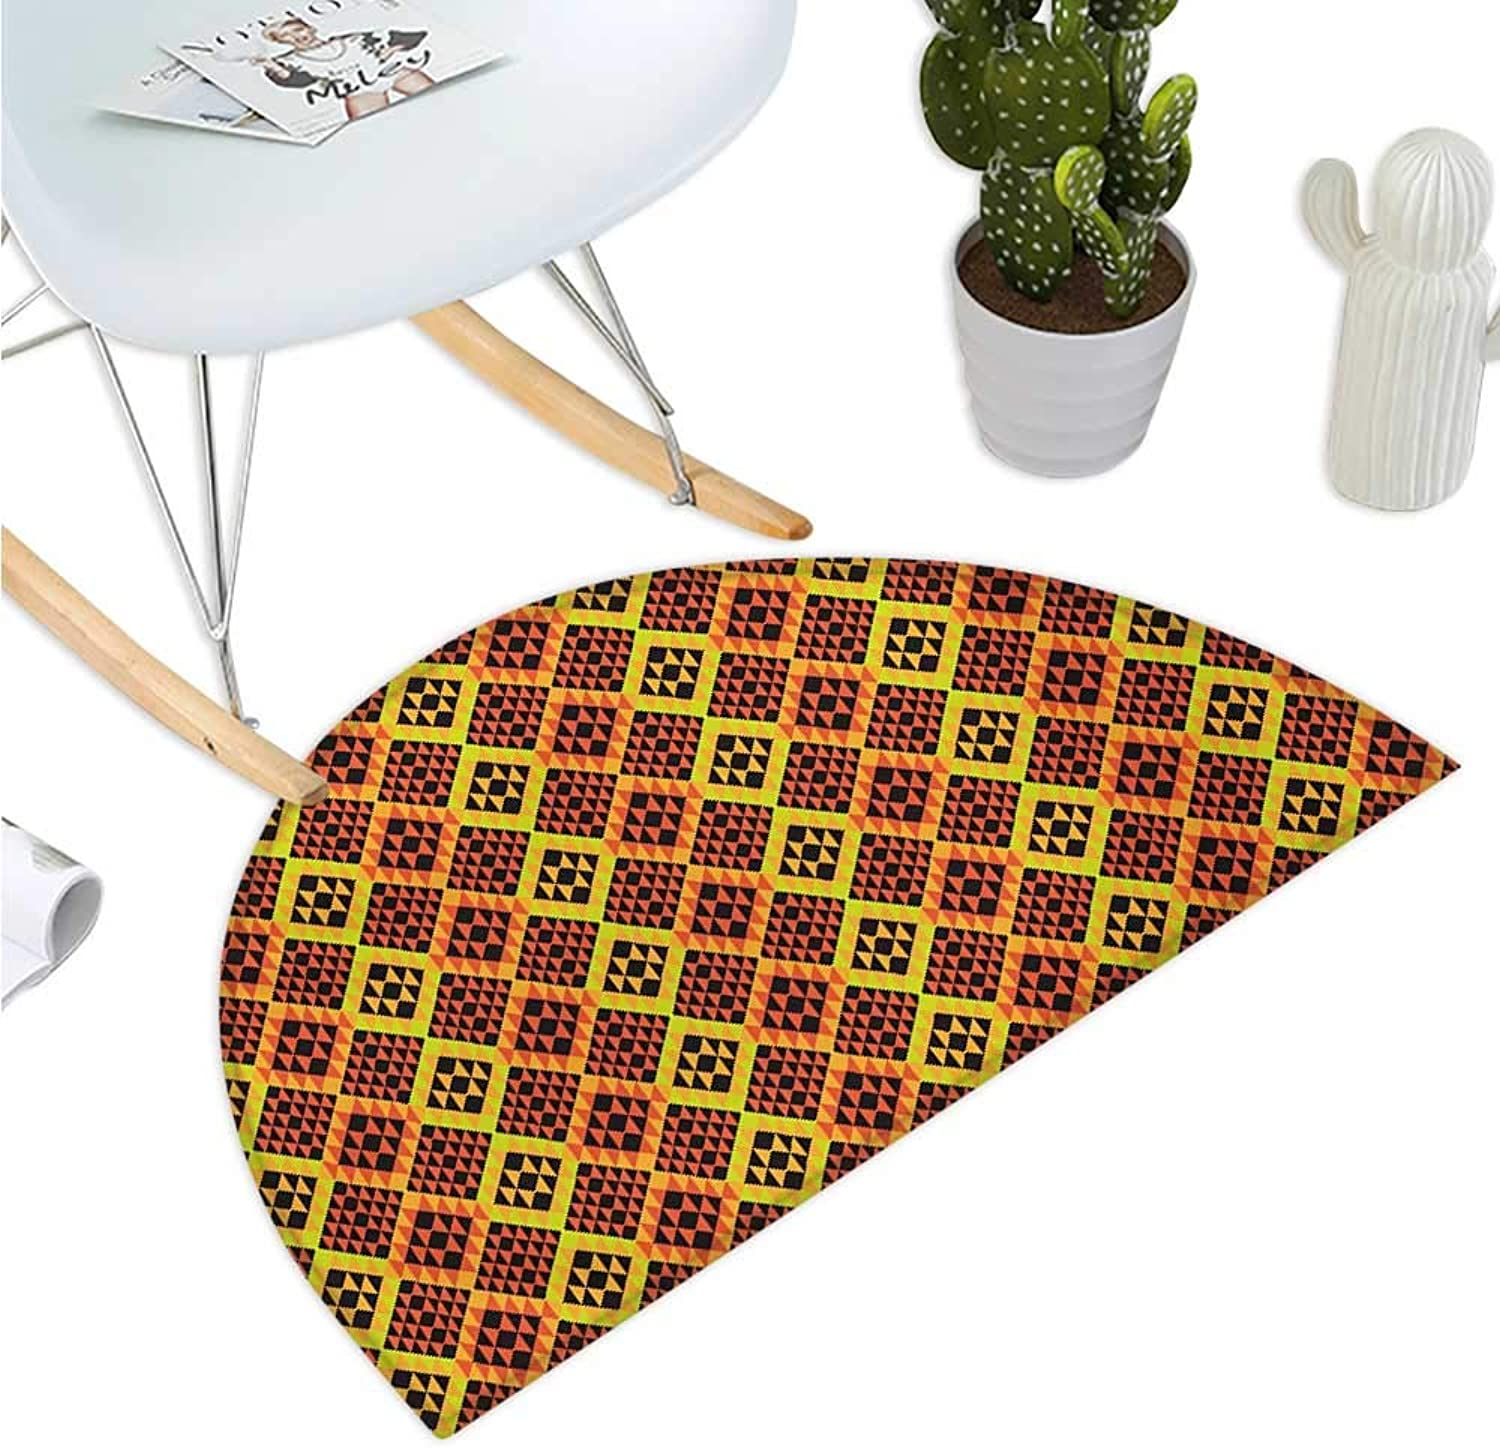 Ethnic Half Round Door mats Warm colord Rhombus Pattern Design from Mexican Peruvian Cultures Entry Door Mat H 43.3  xD 64.9  Vermilion Yellow and Black